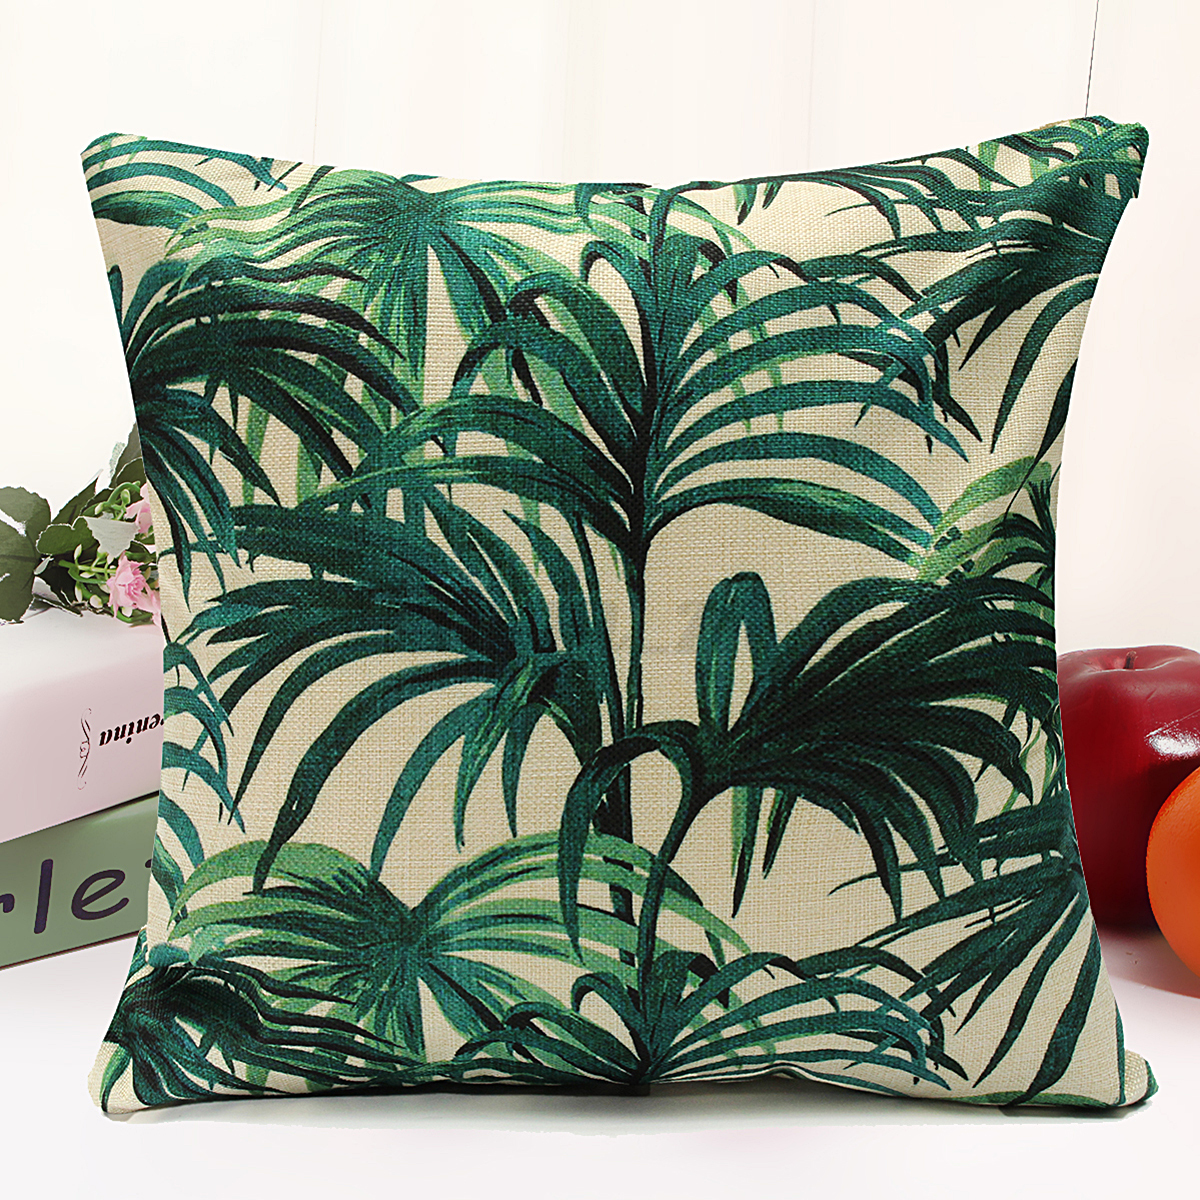 Floral Tropical Plant Leaf Cushion Covers Throw Pillow Case Home Decor AU SELLER eBay